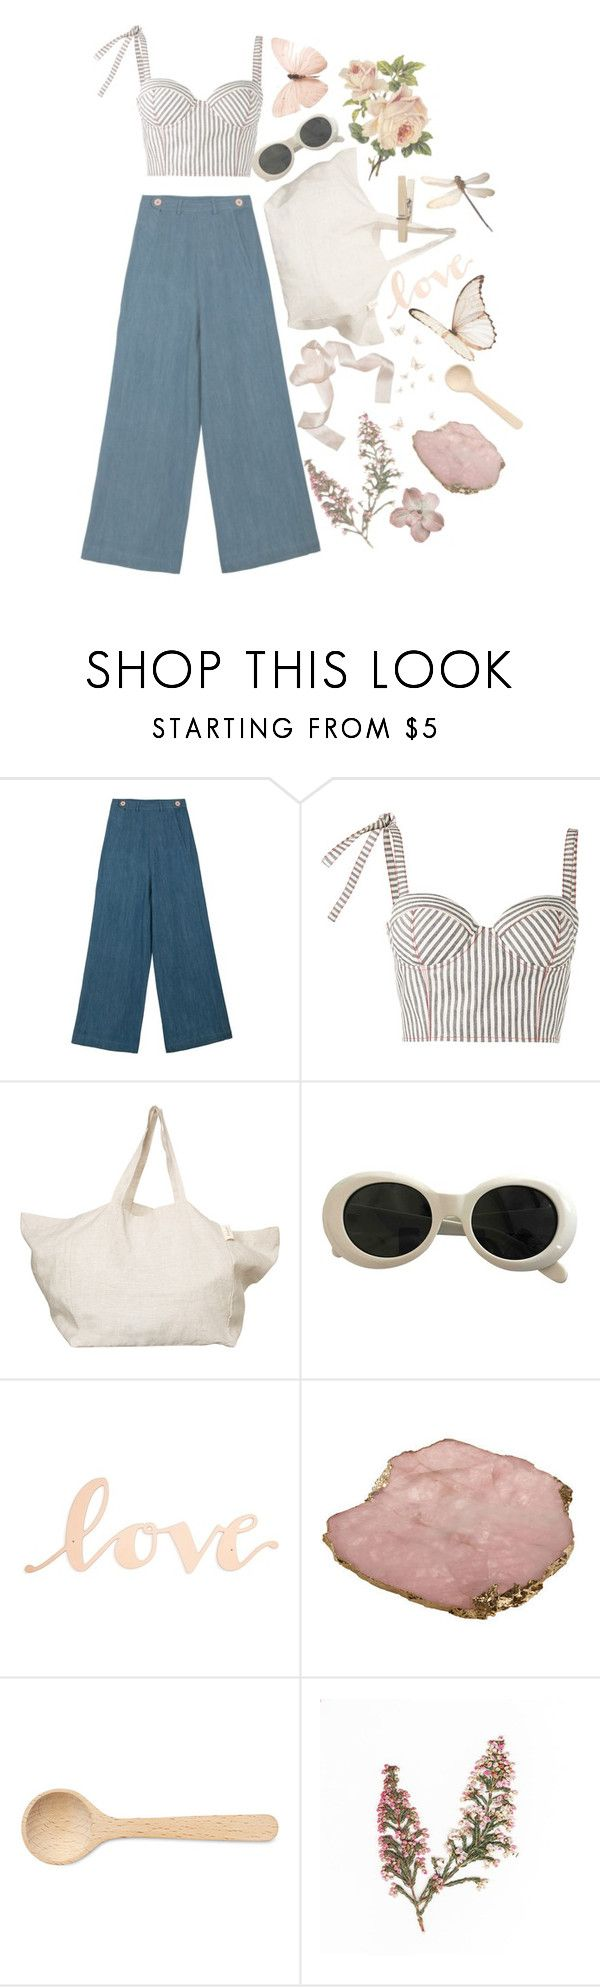 """""""Galway girl"""" by angel876 ❤ liked on Polyvore featuring MARA, Rosie Assoulin, The Beach People, Acne Studios, Primitives By Kathy, Kimberly McDonald and HAY"""